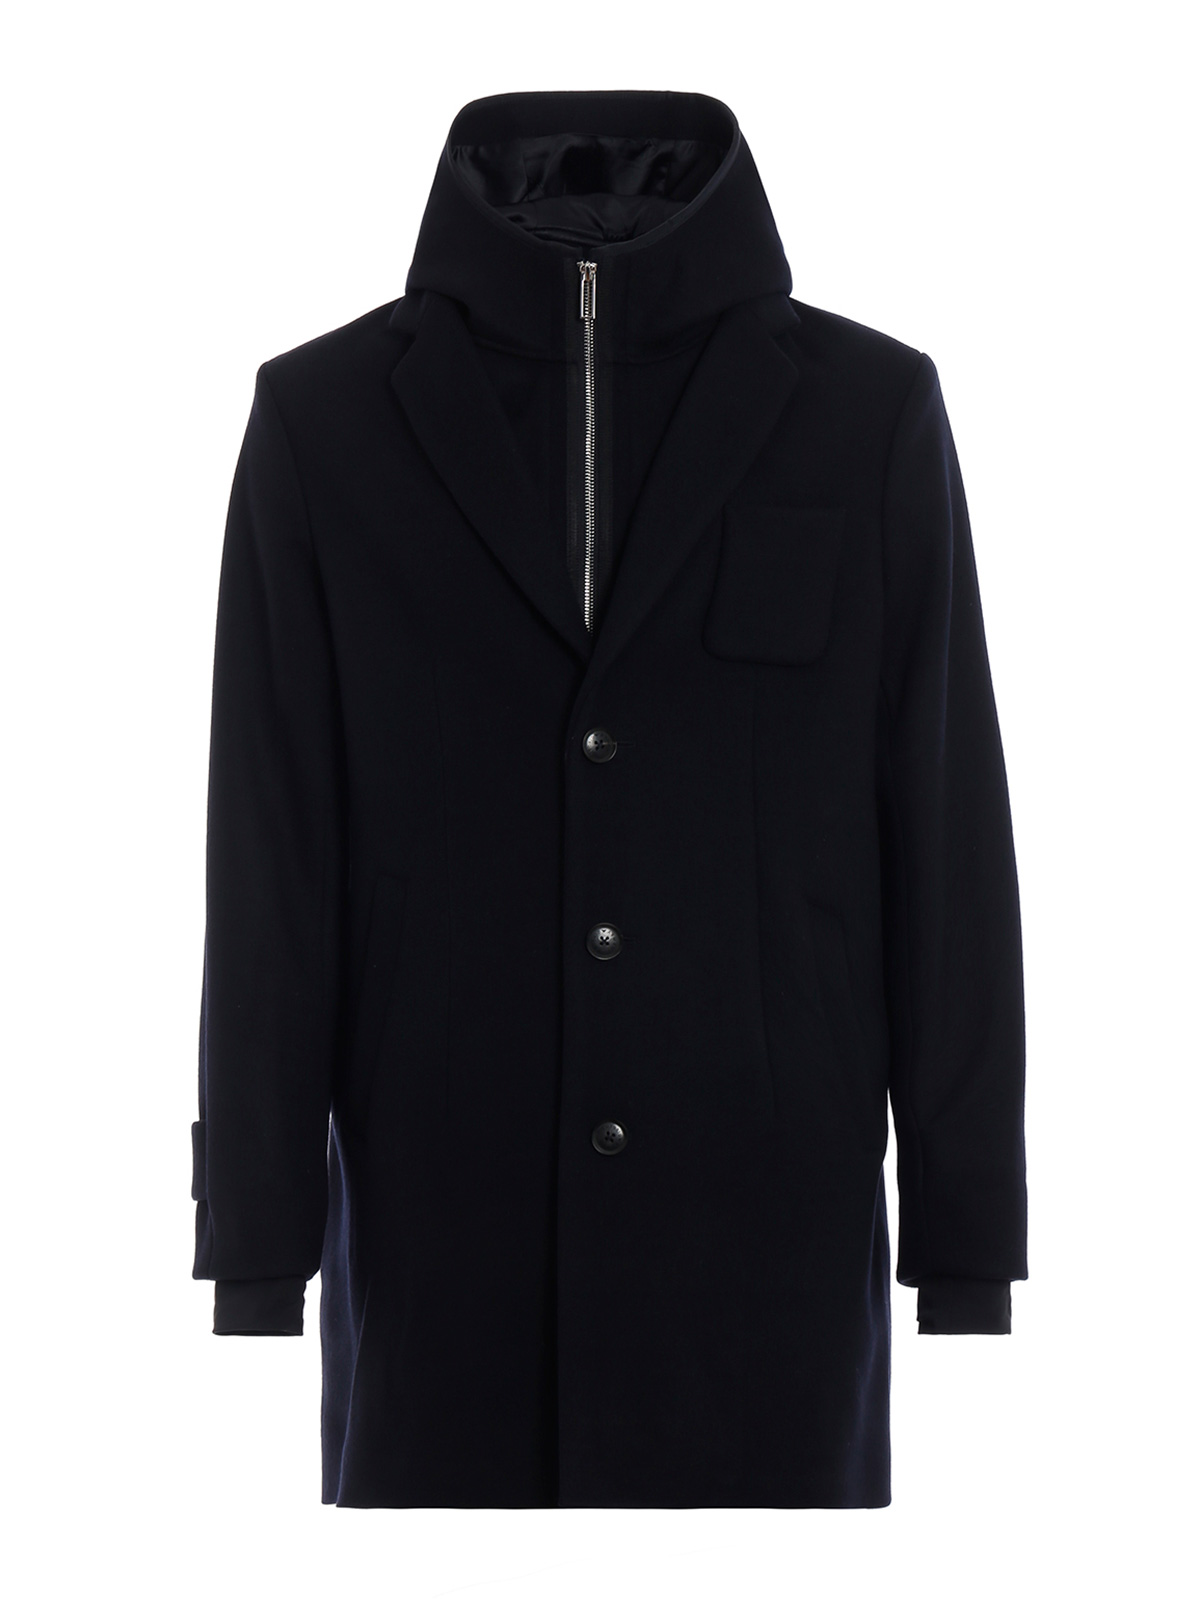 Picture of EMPORIO ARMANI | Men's Wool Blend Coat